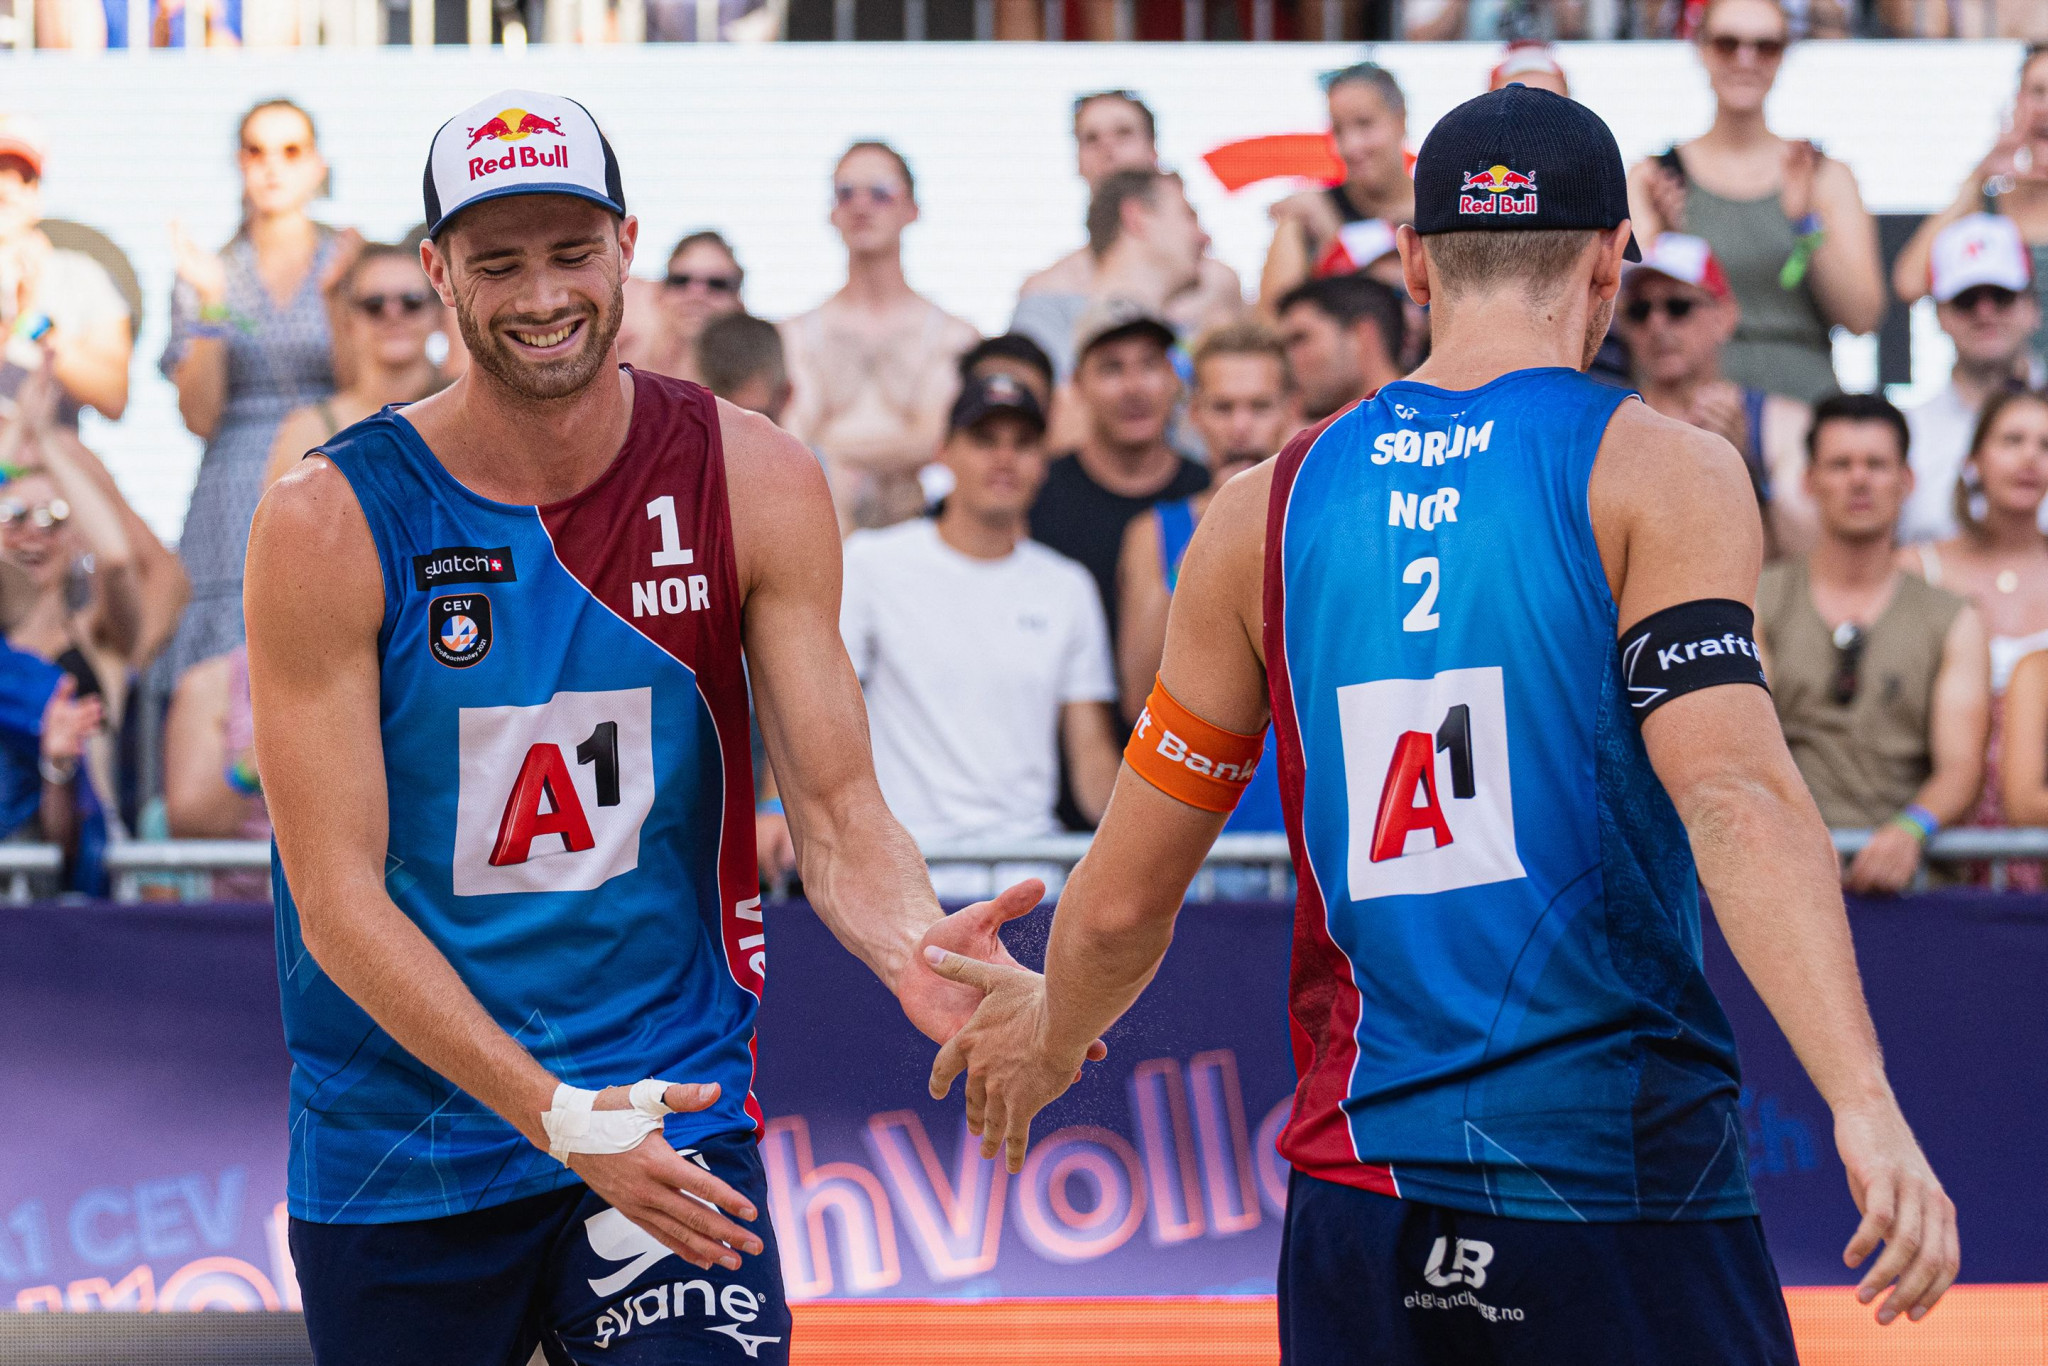 Norway's Olympic champions gun for gold at FIVB Beach Volleyball World Tour Finals